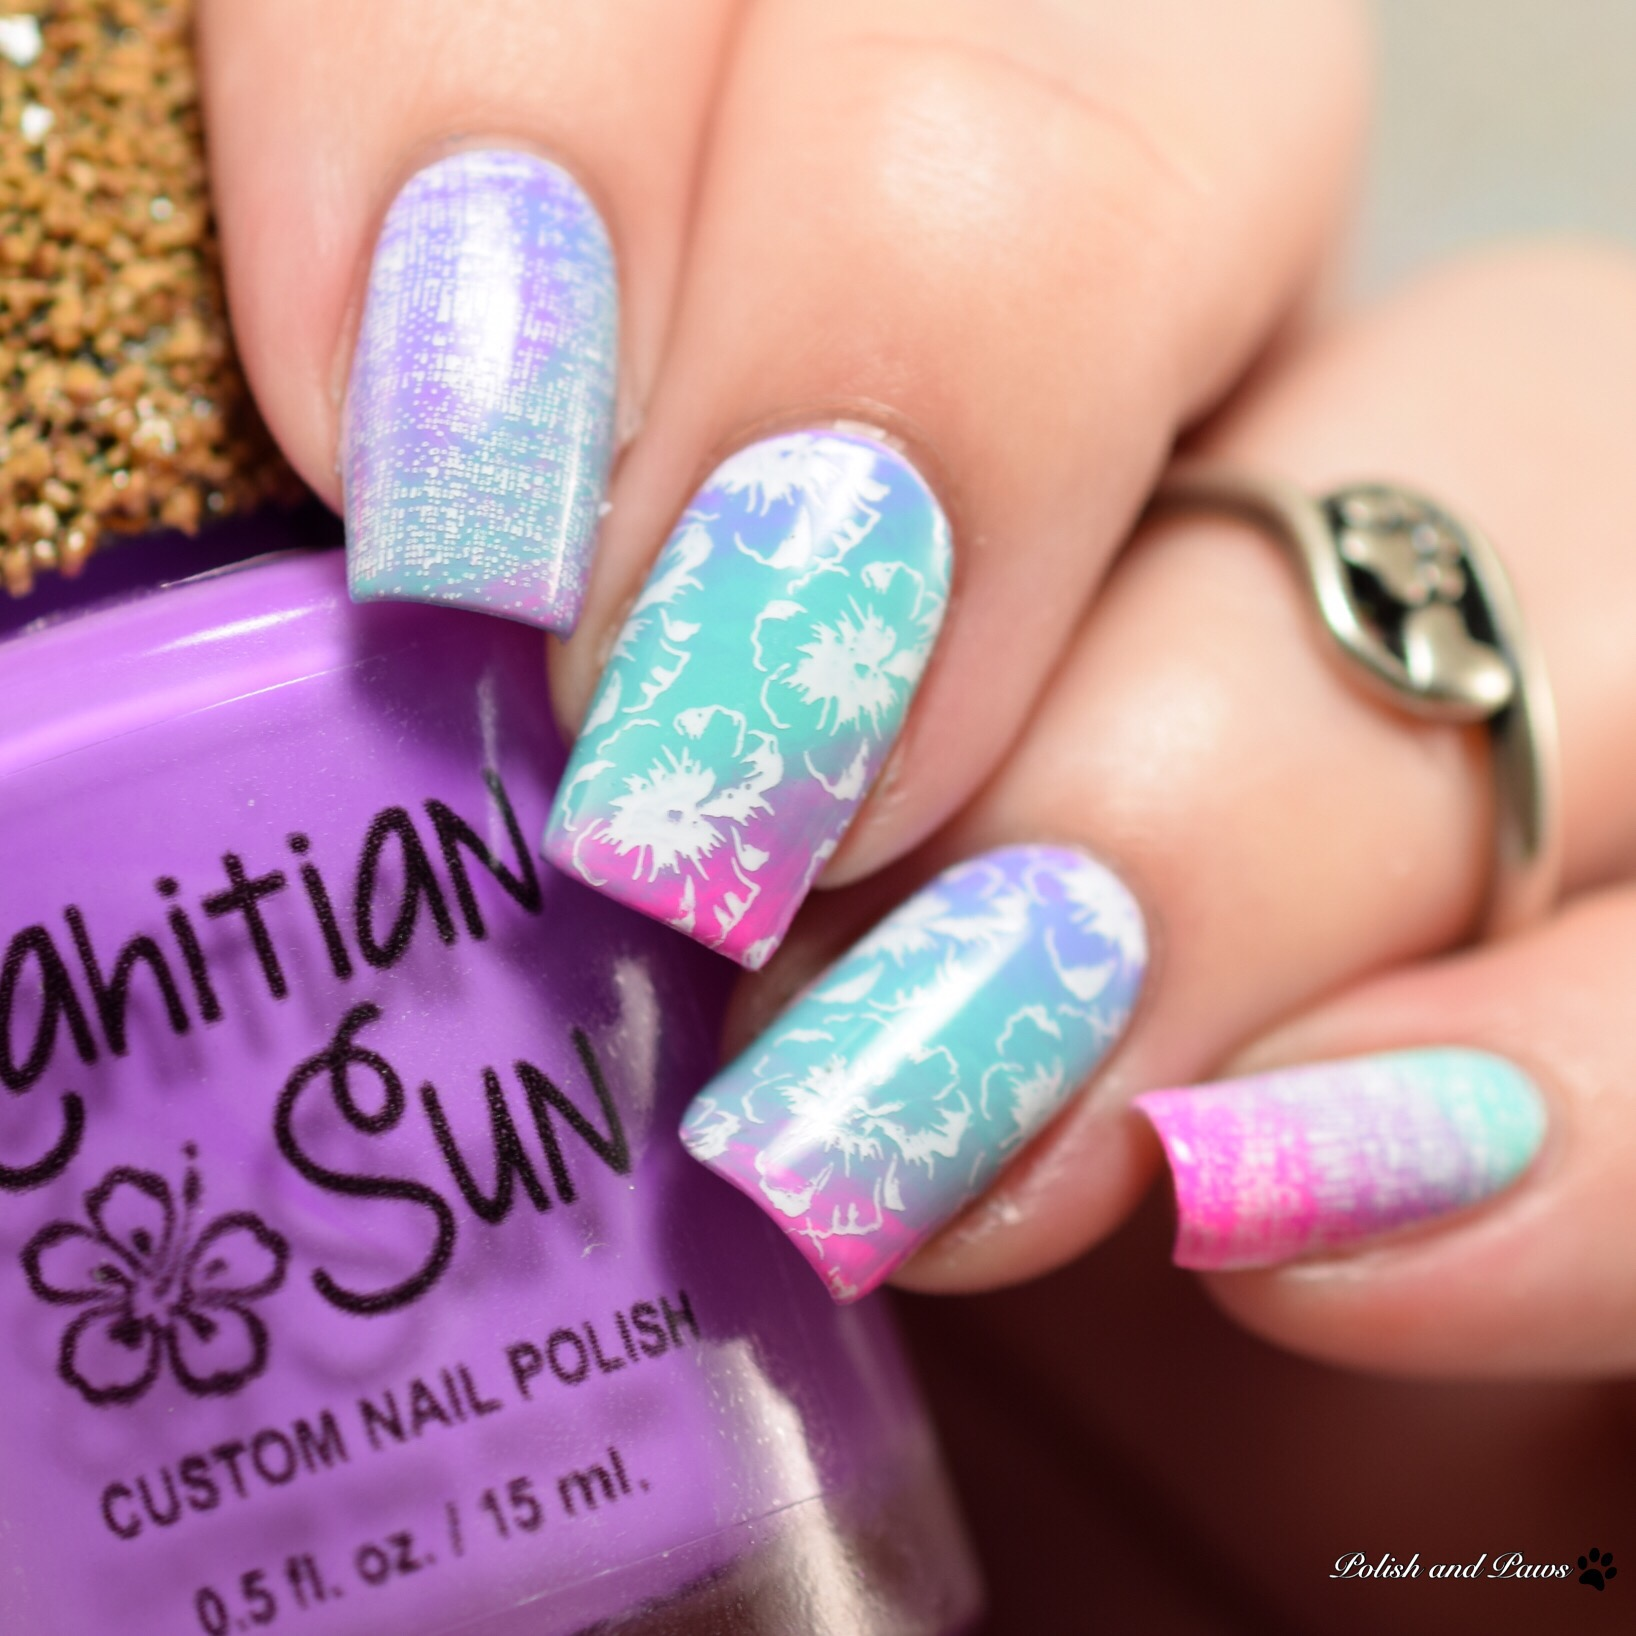 Tahitian Sun Bright Tone Spring Collection Nail Art Polish And Paws